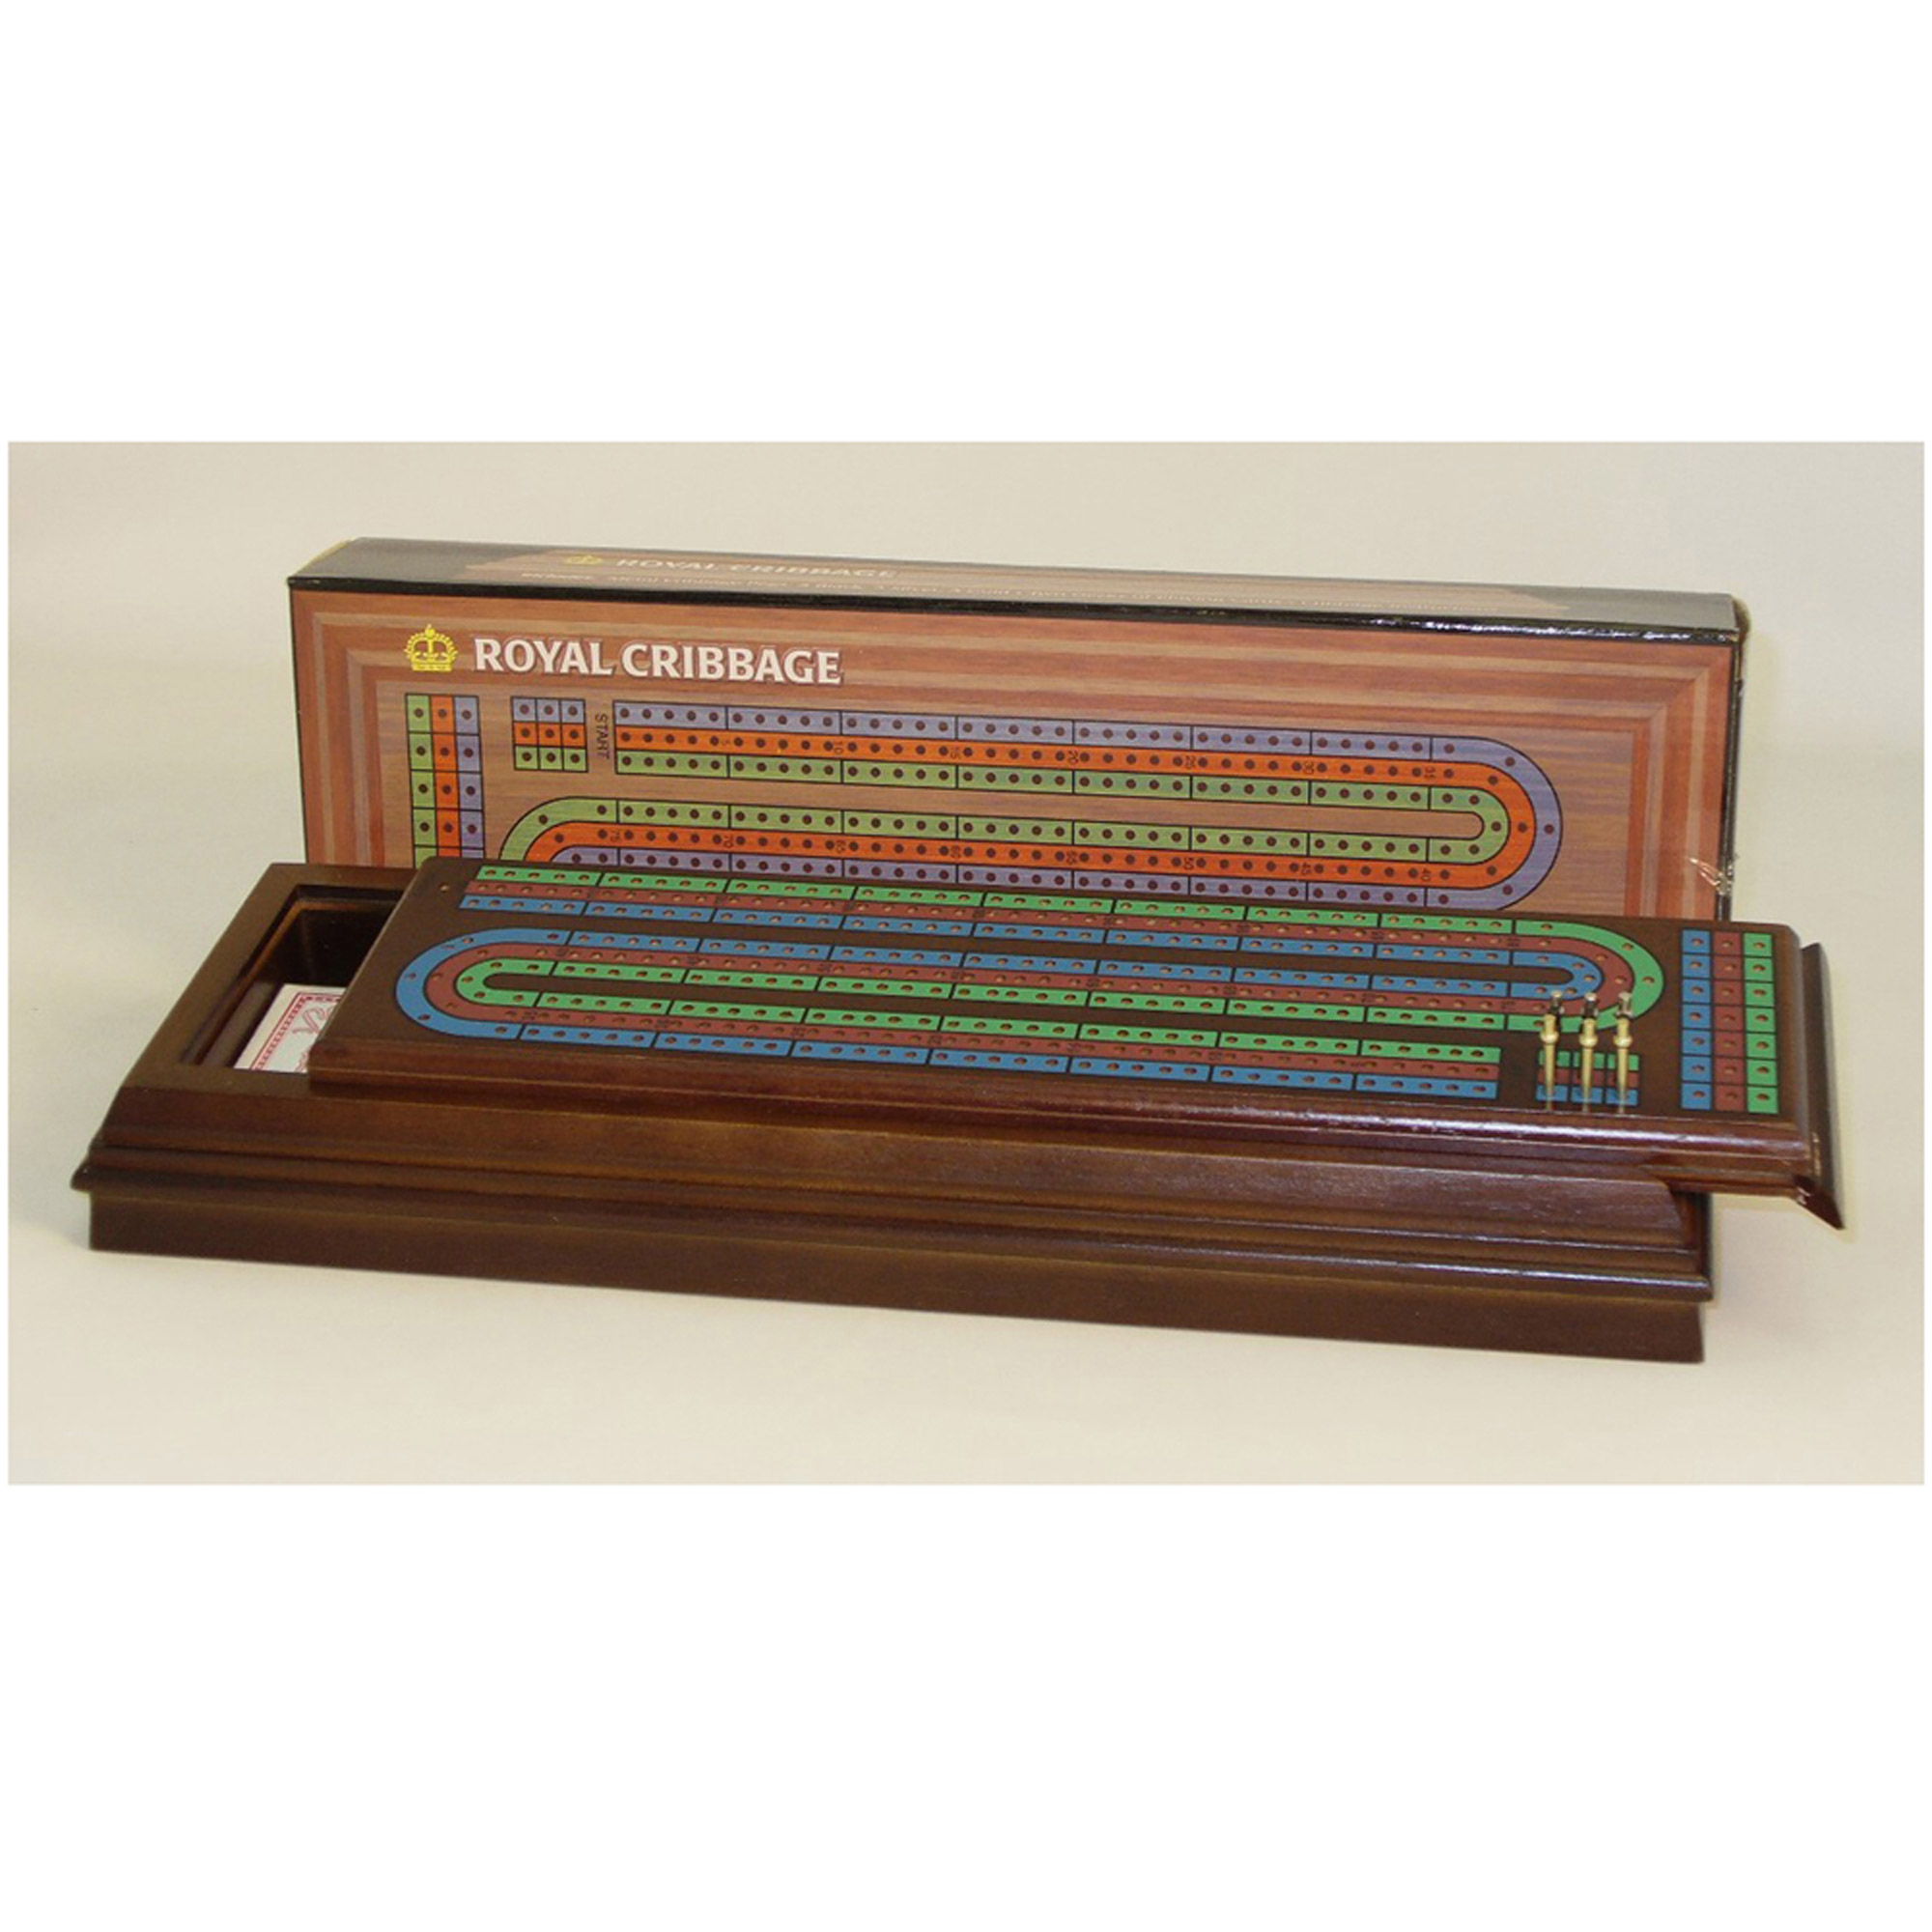 Worldwise Imports Walnut Stained Cribbage Box, 3-Track